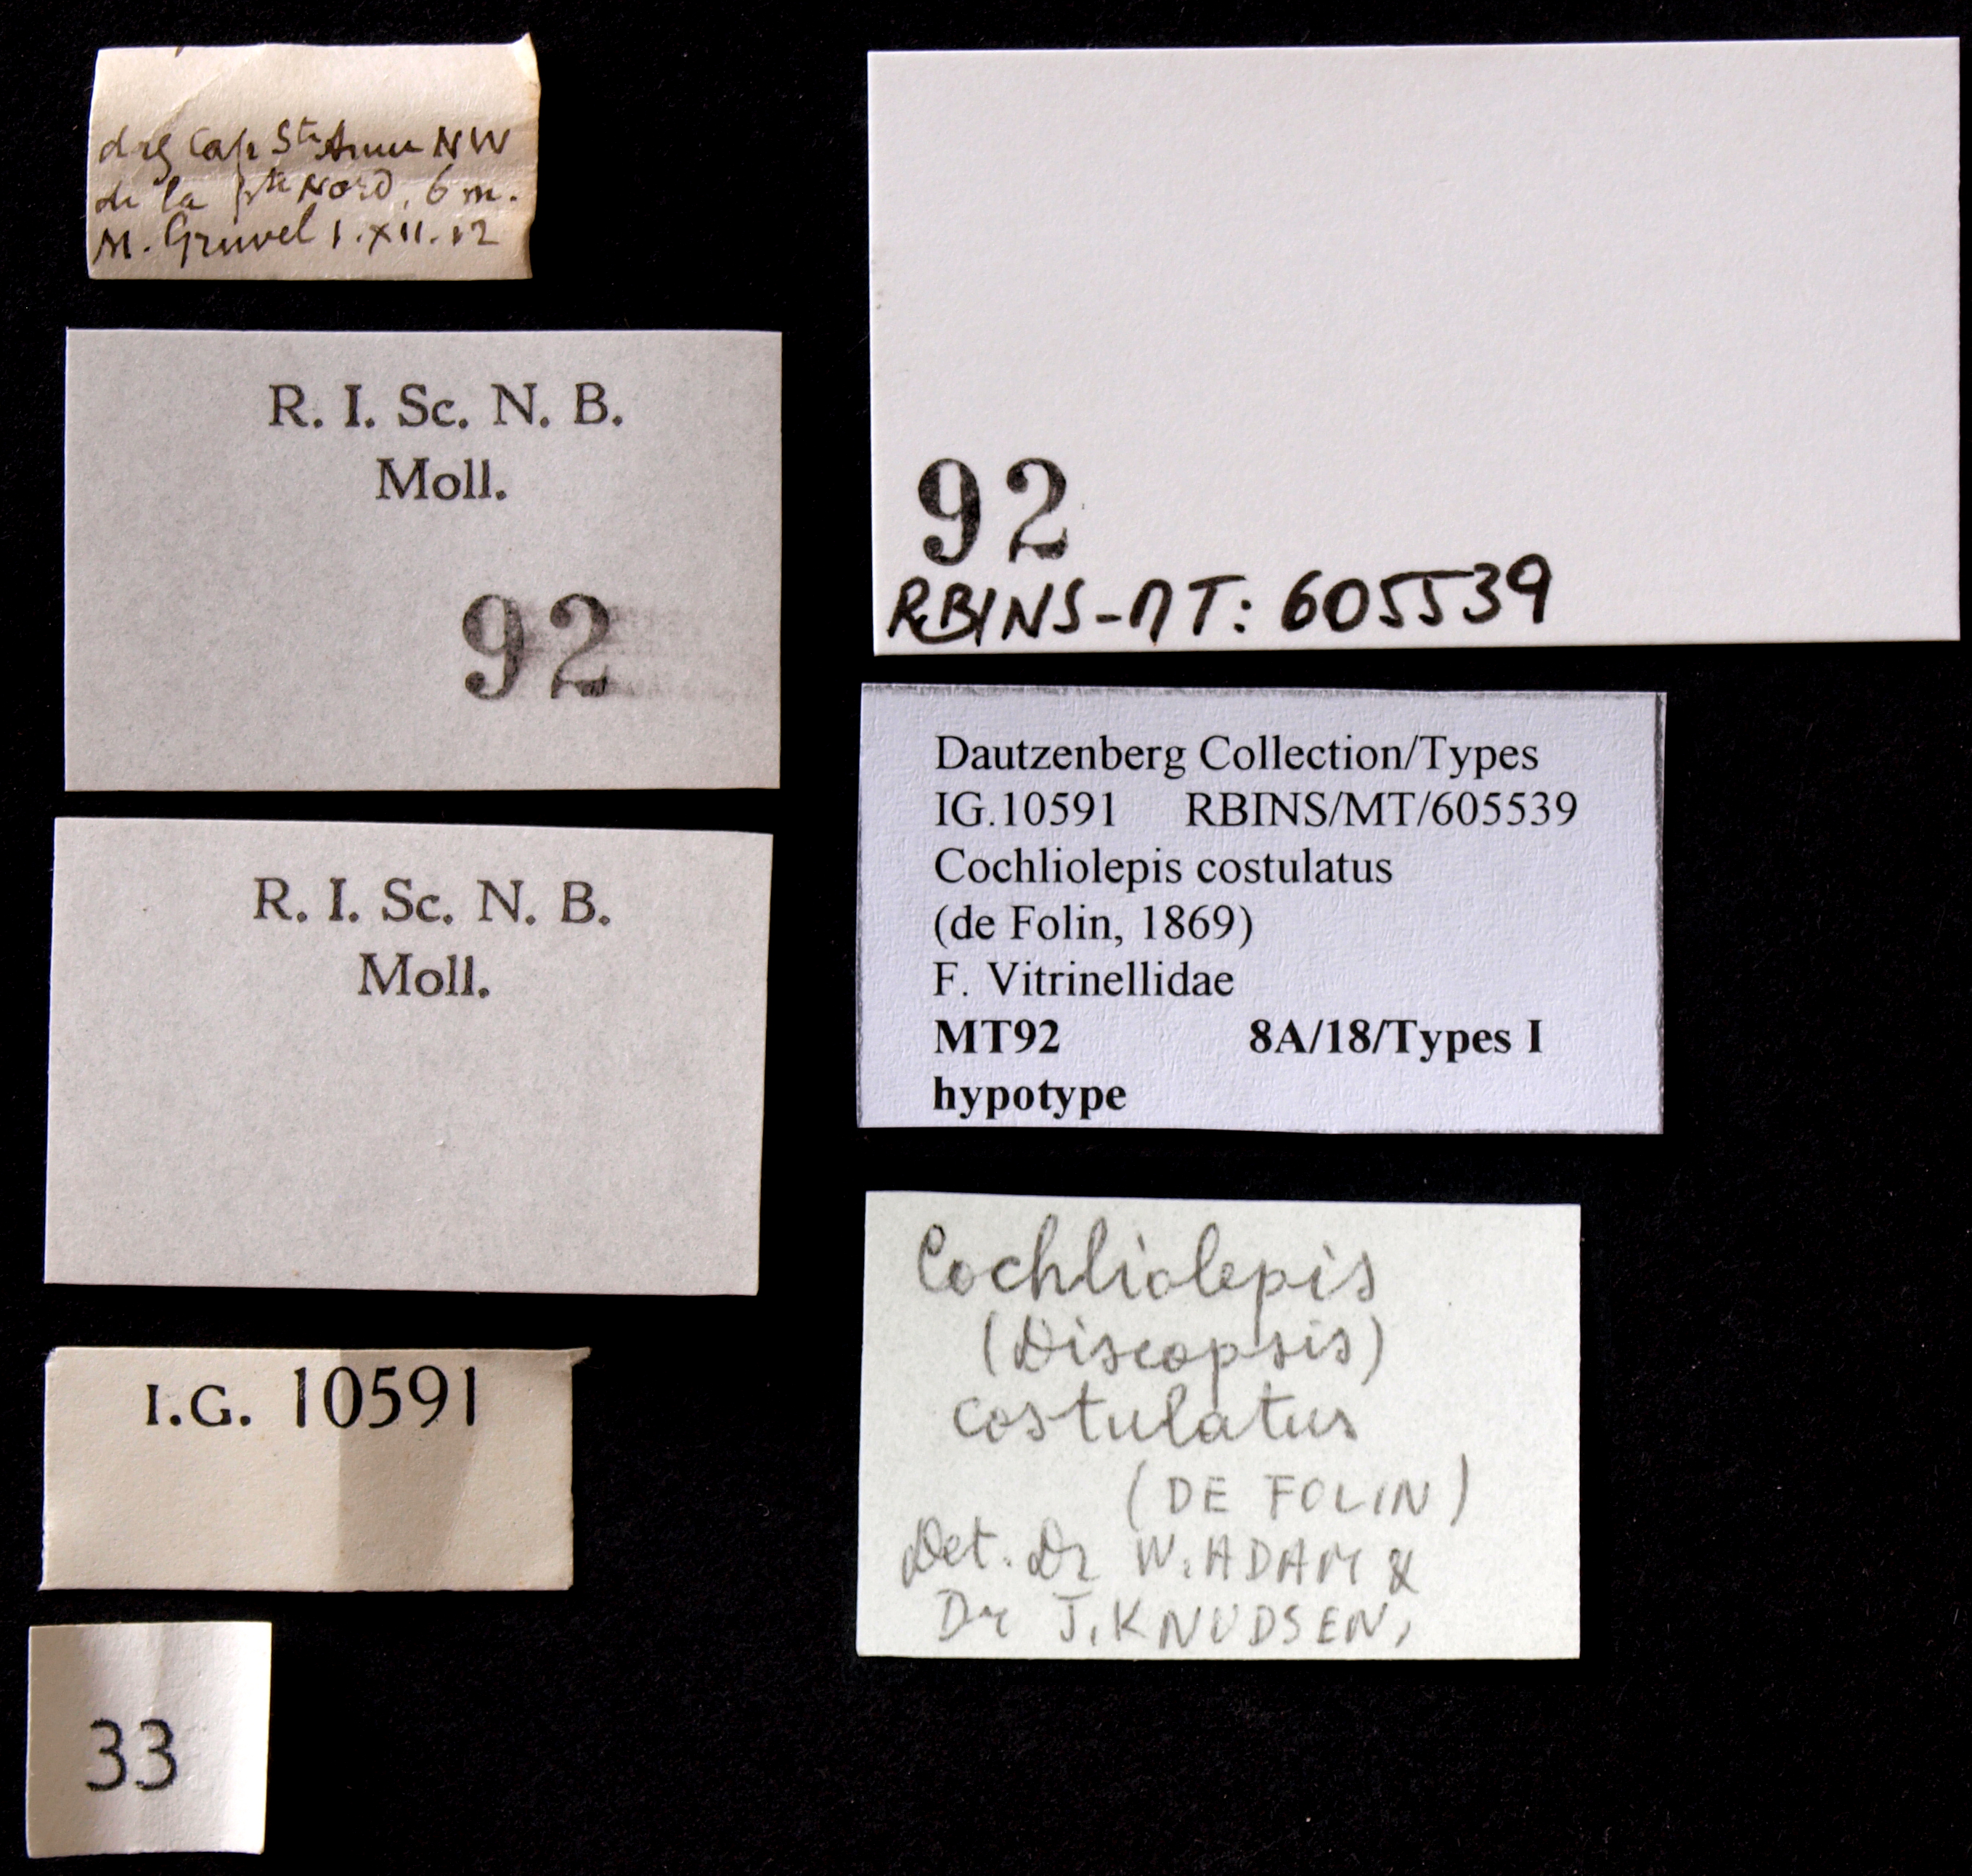 BE-RBINS-INV HYPOTYPE MT 92 Cochliolepis (Discopis) costulatus LABELS.jpg